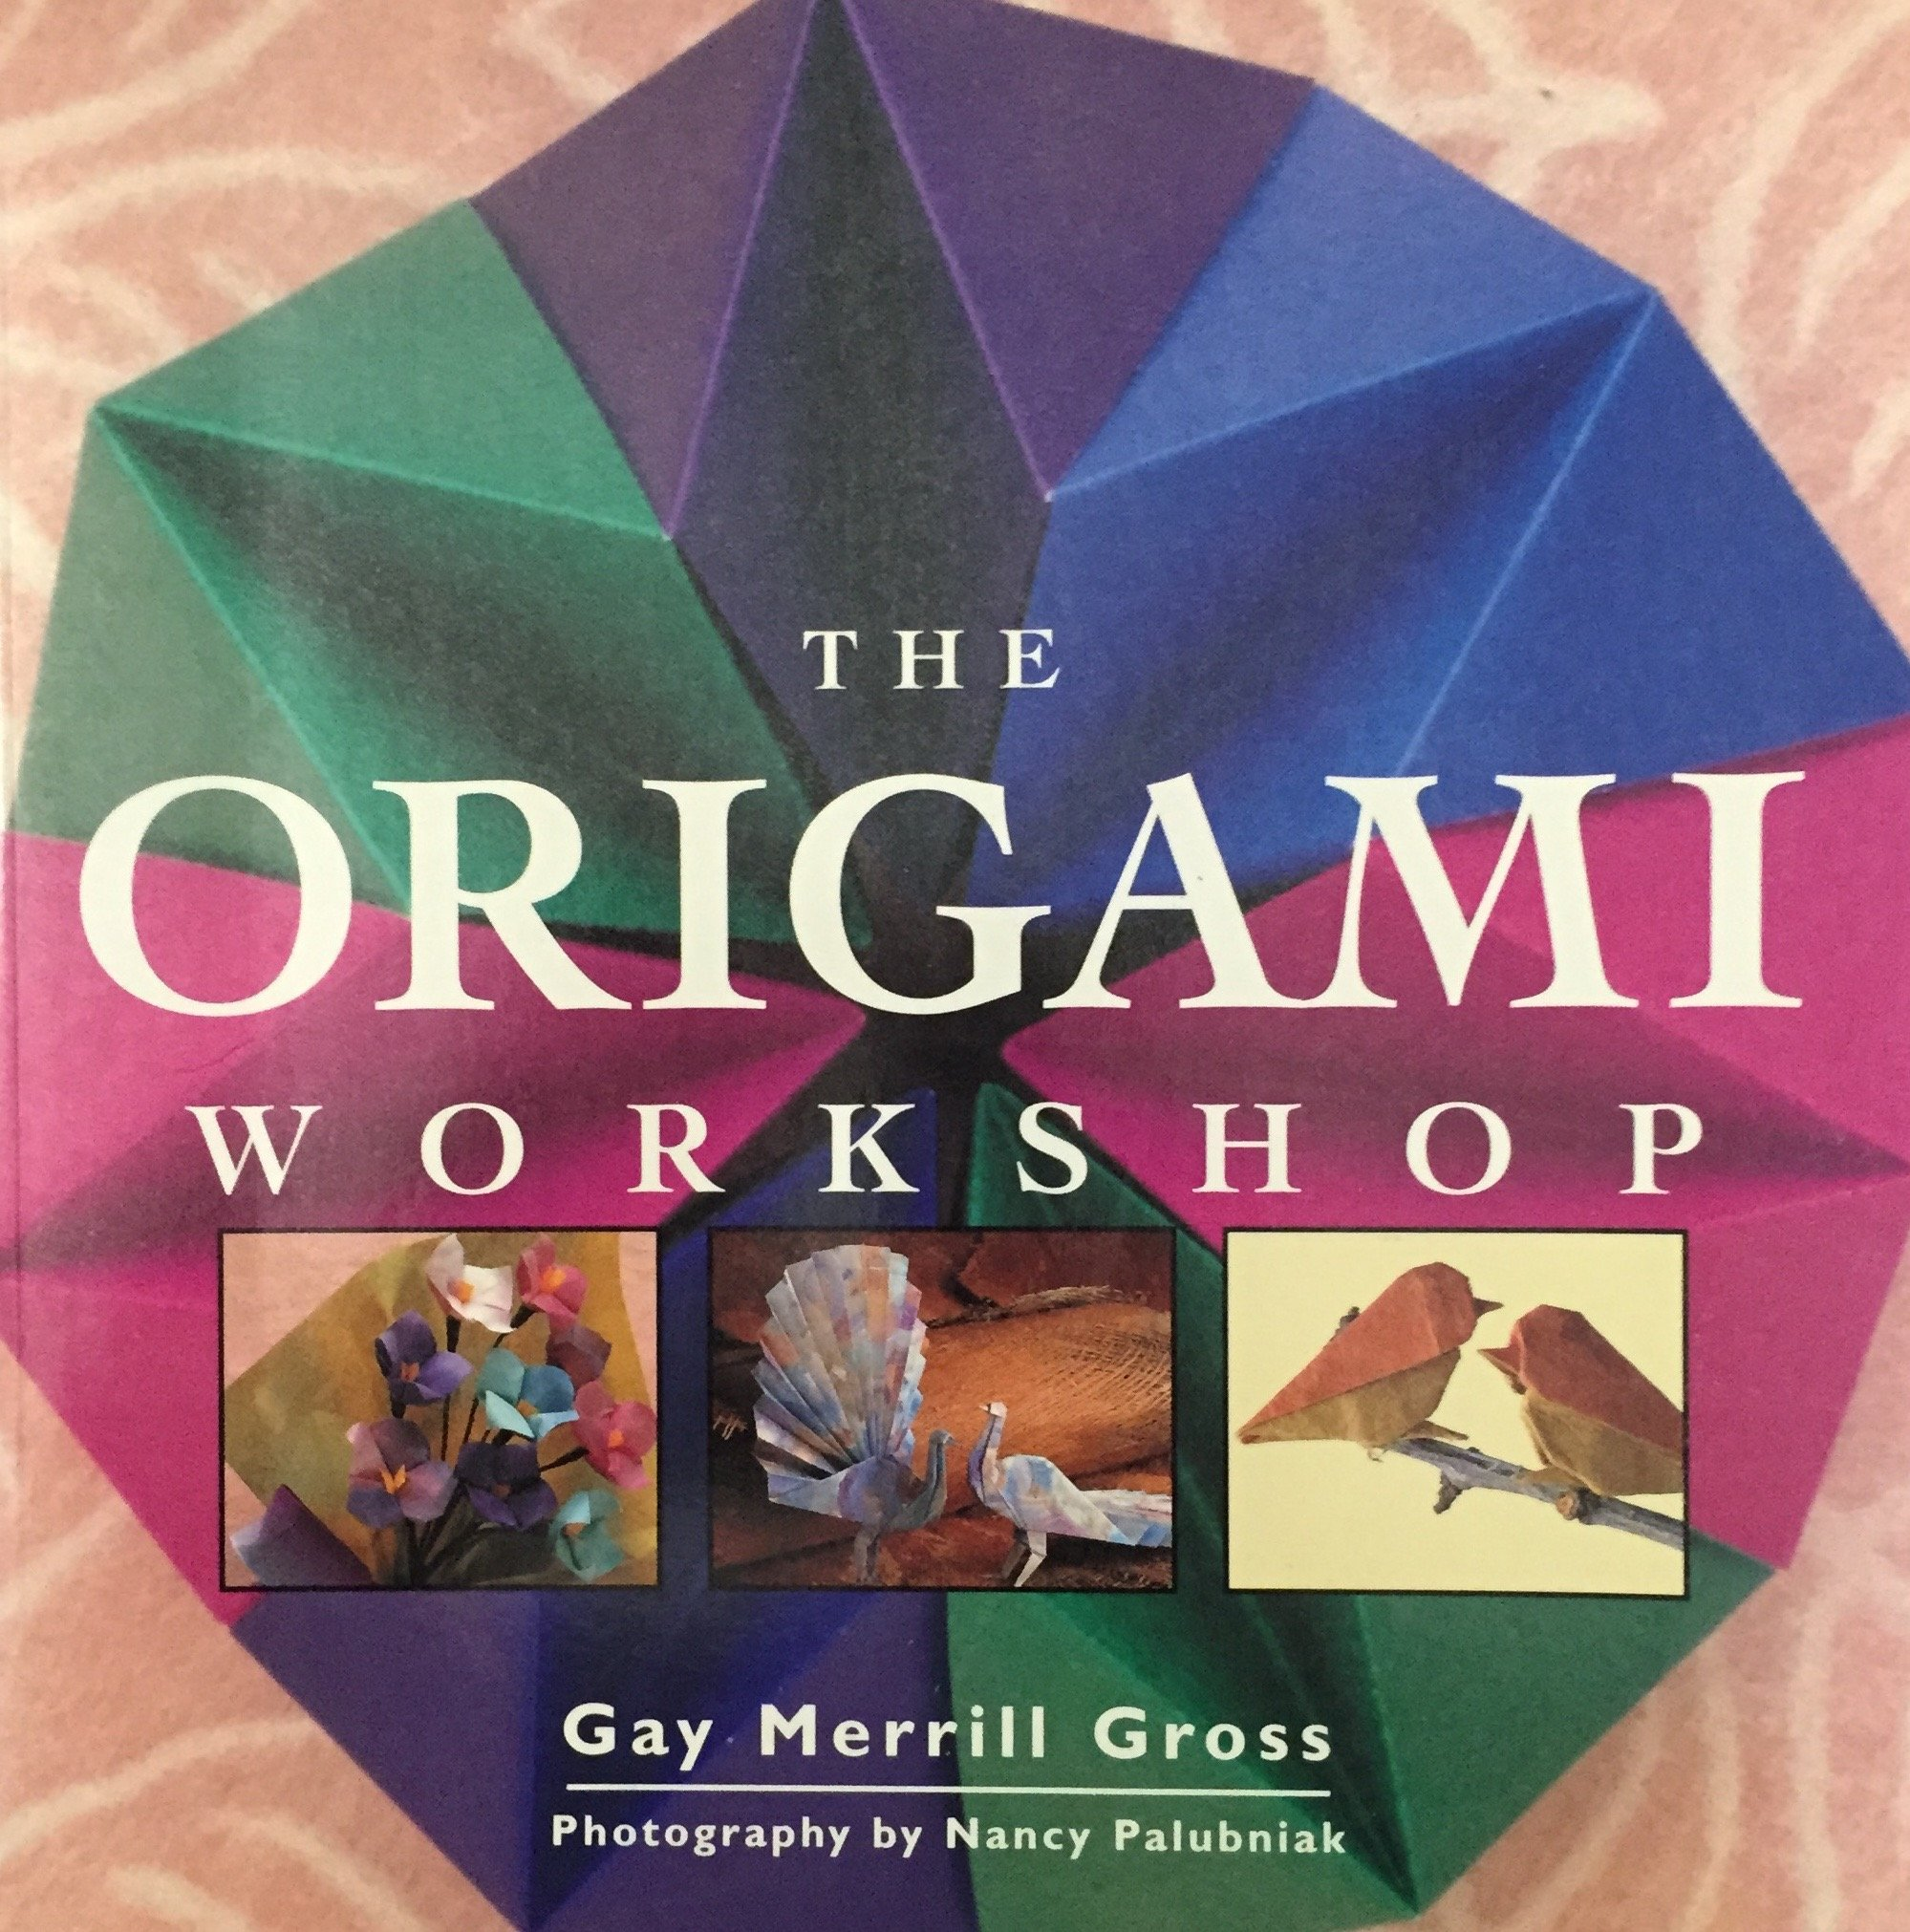 The Origami Workshop